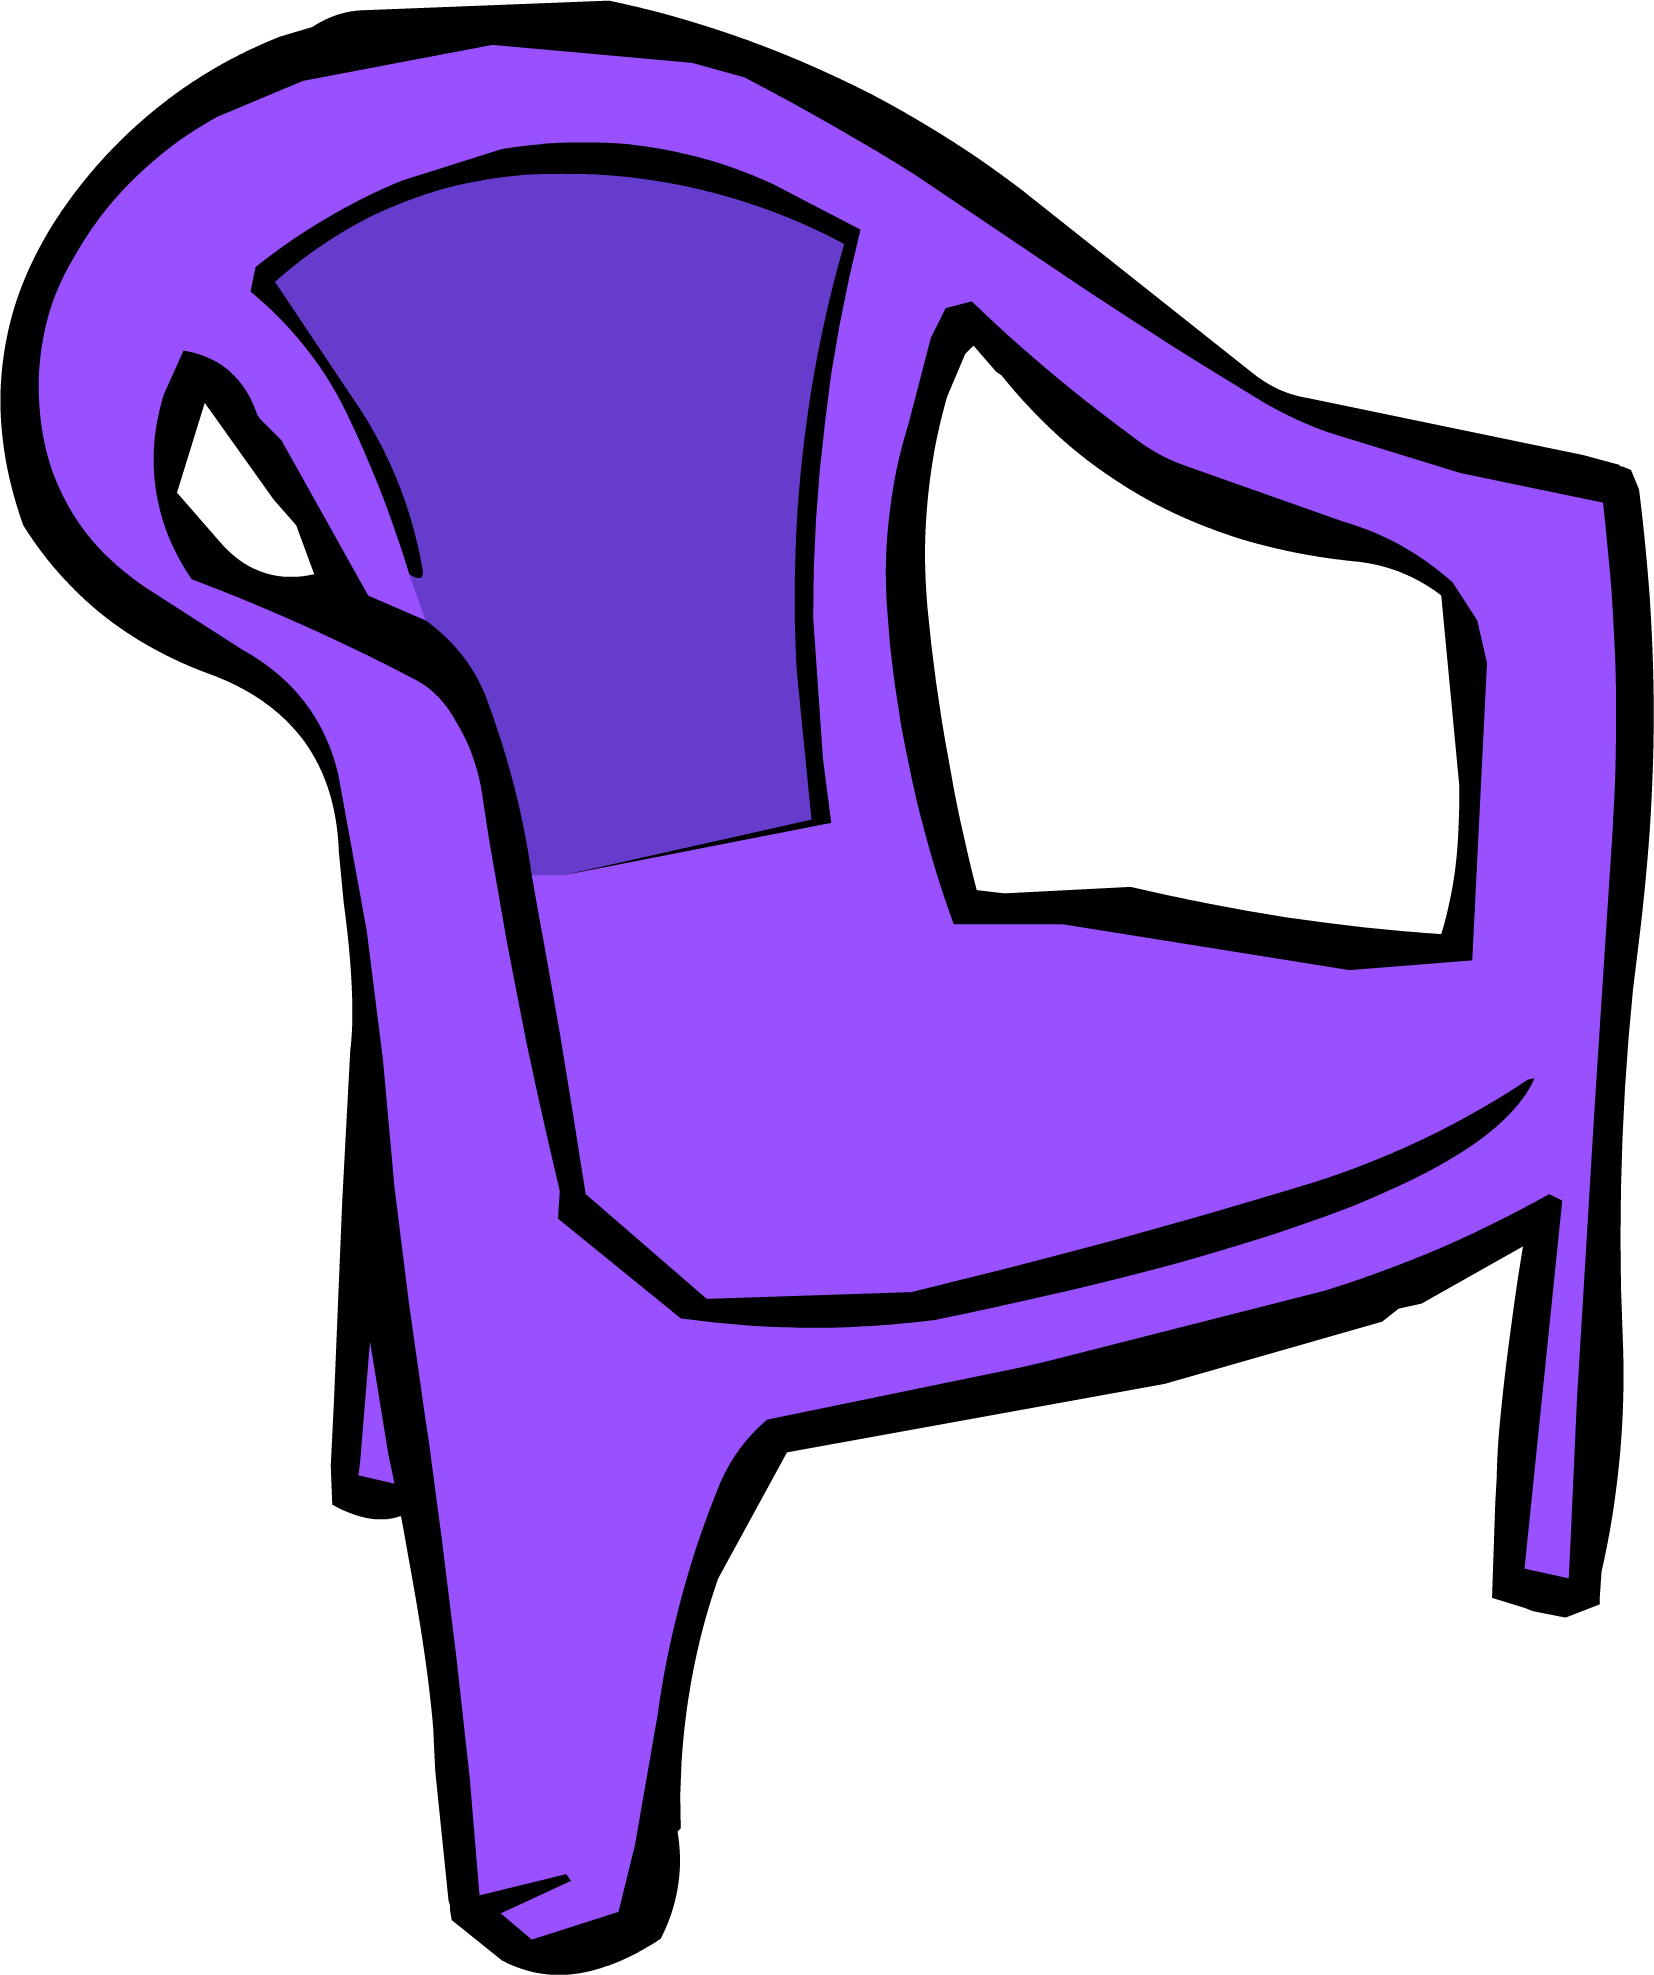 Win clipart white plastic. Image purple chair png